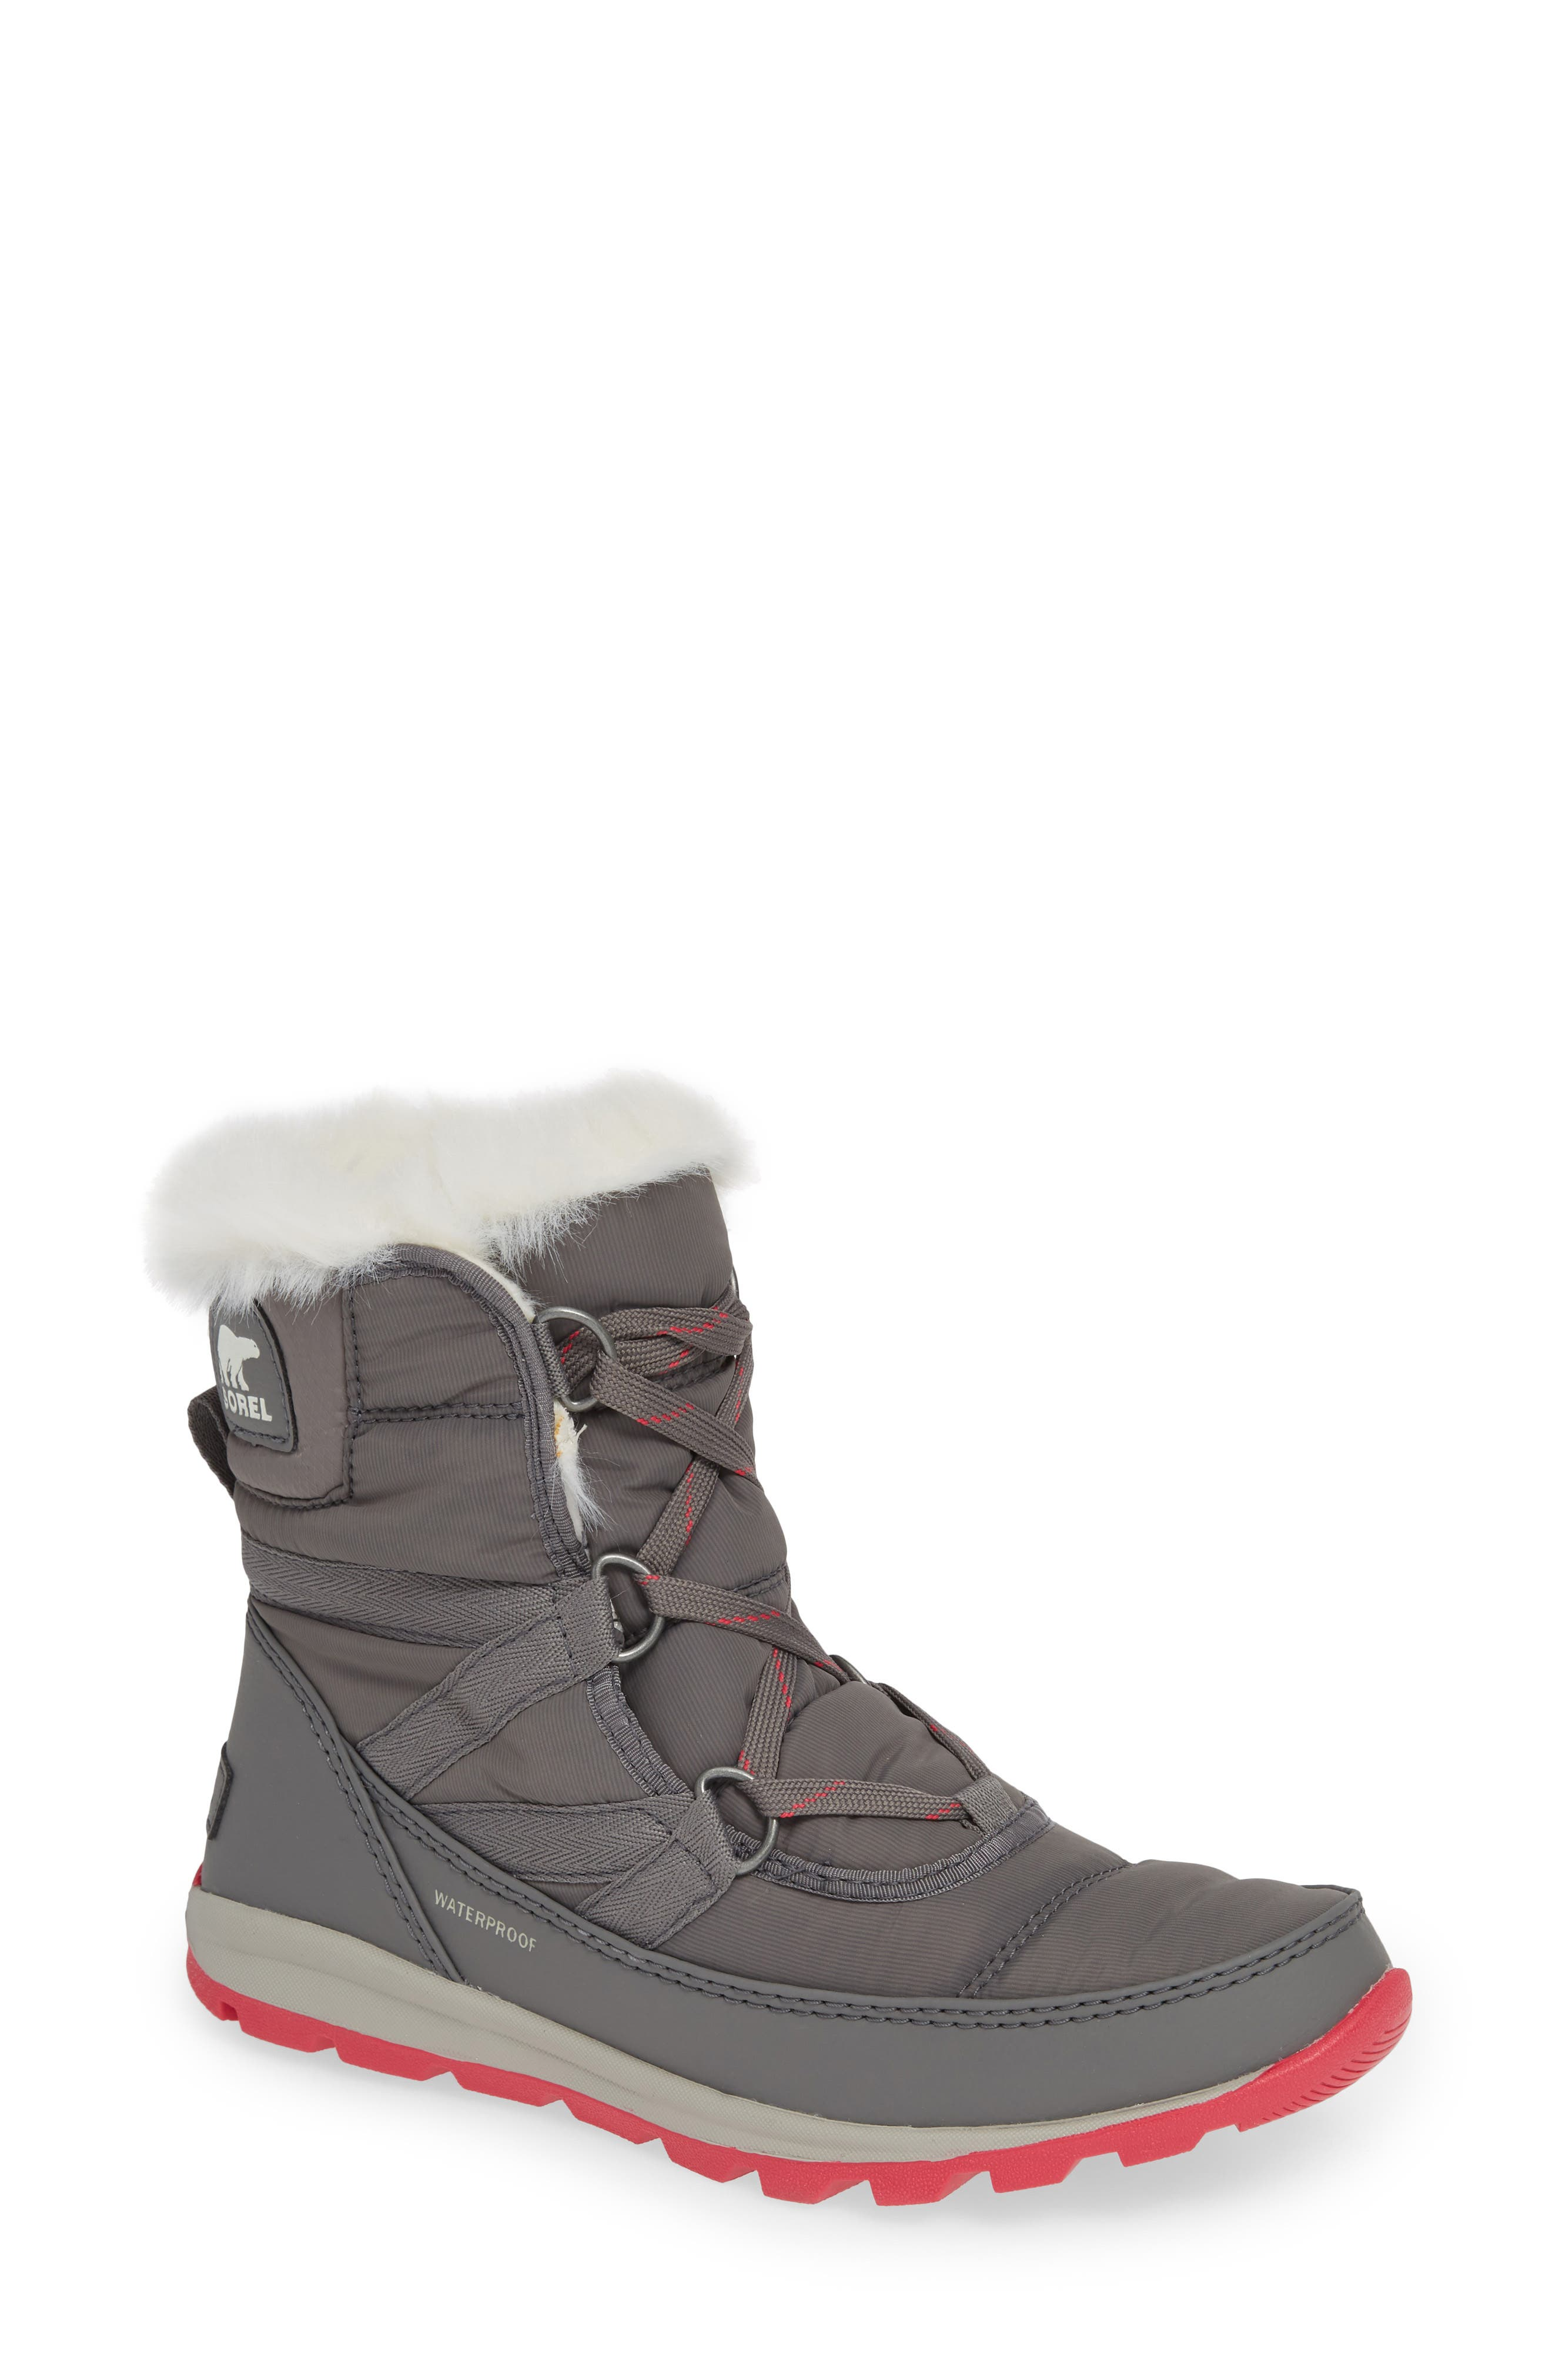 Whitney Snow Bootie,                         Main,                         color, 053